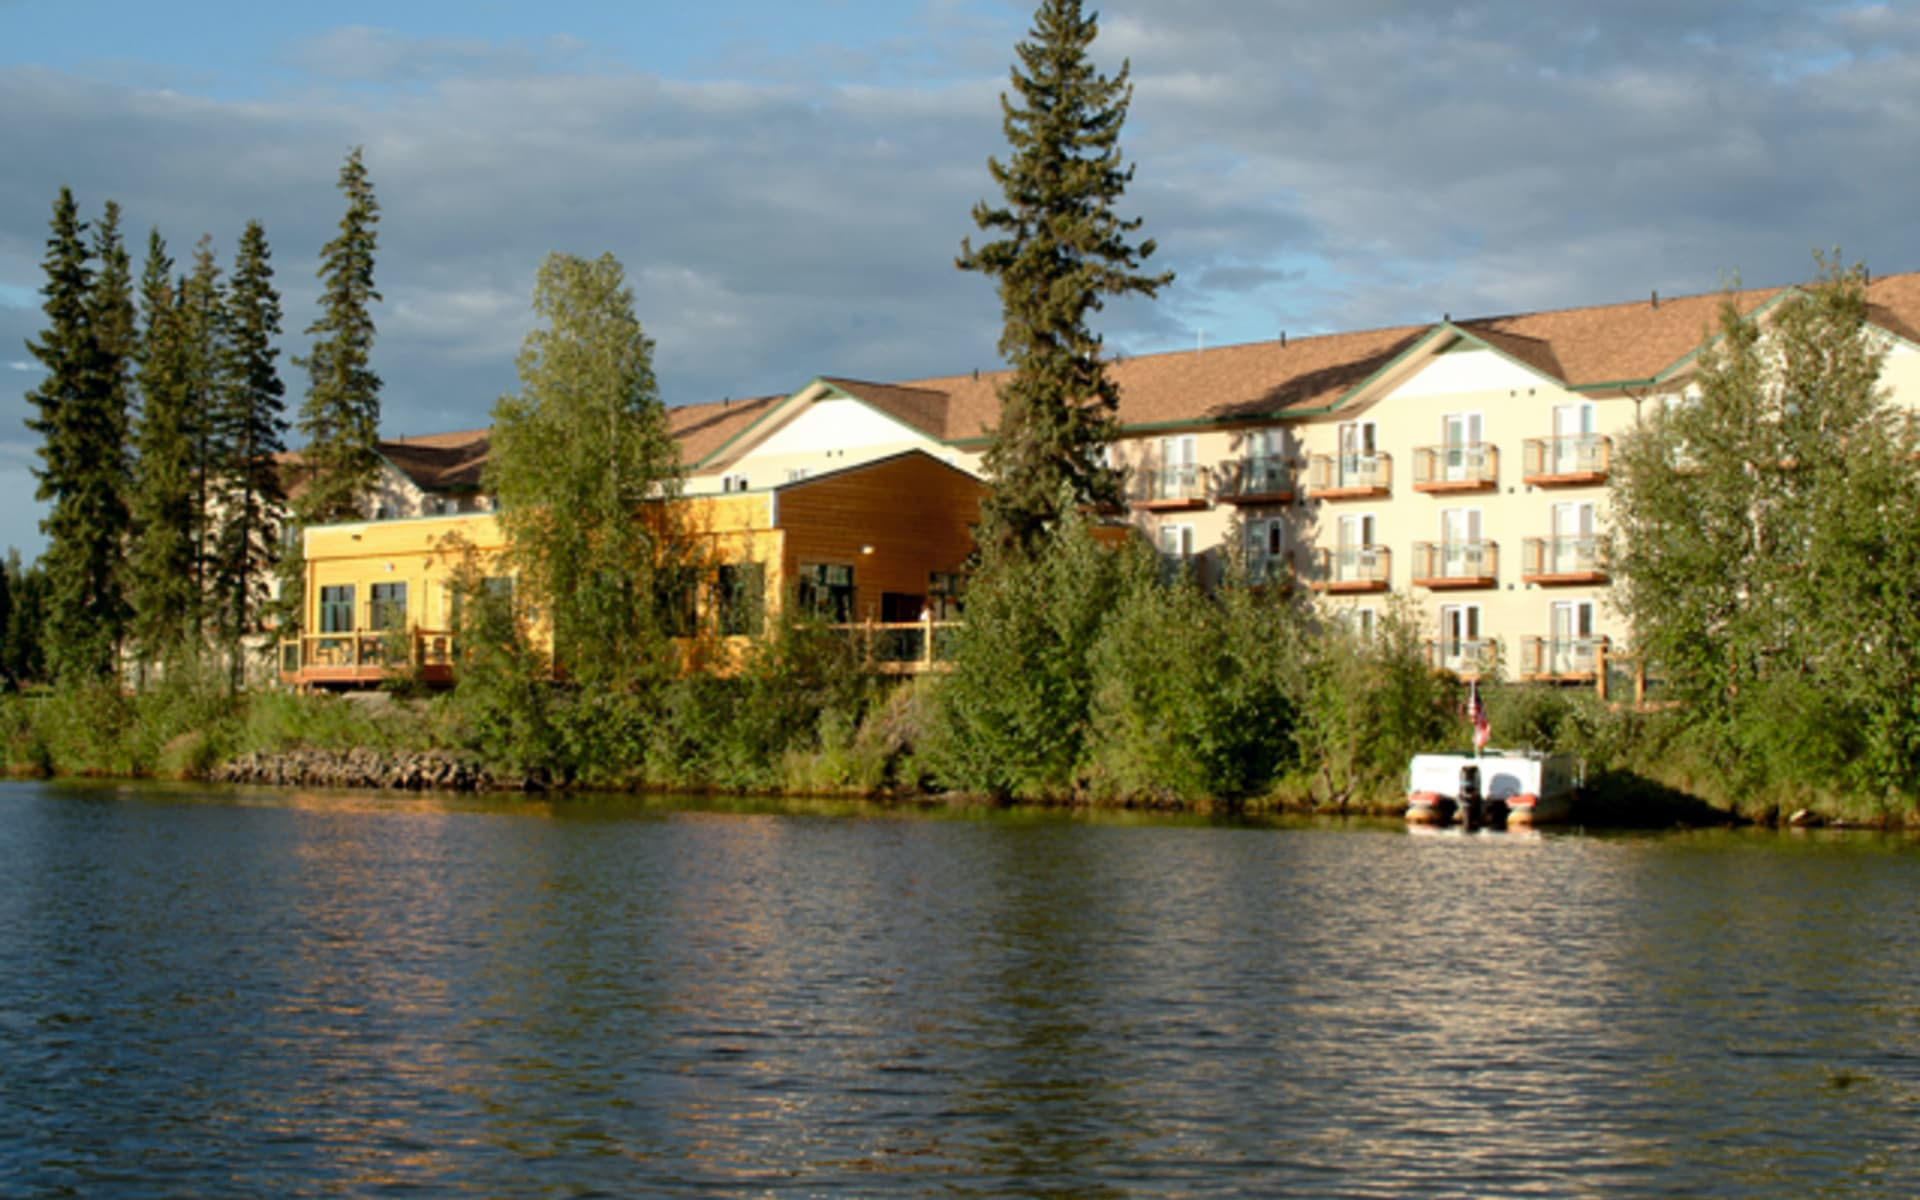 Pike's Waterfront Lodge in Fairbanks:  2012_089_02_Pikes Waterfront